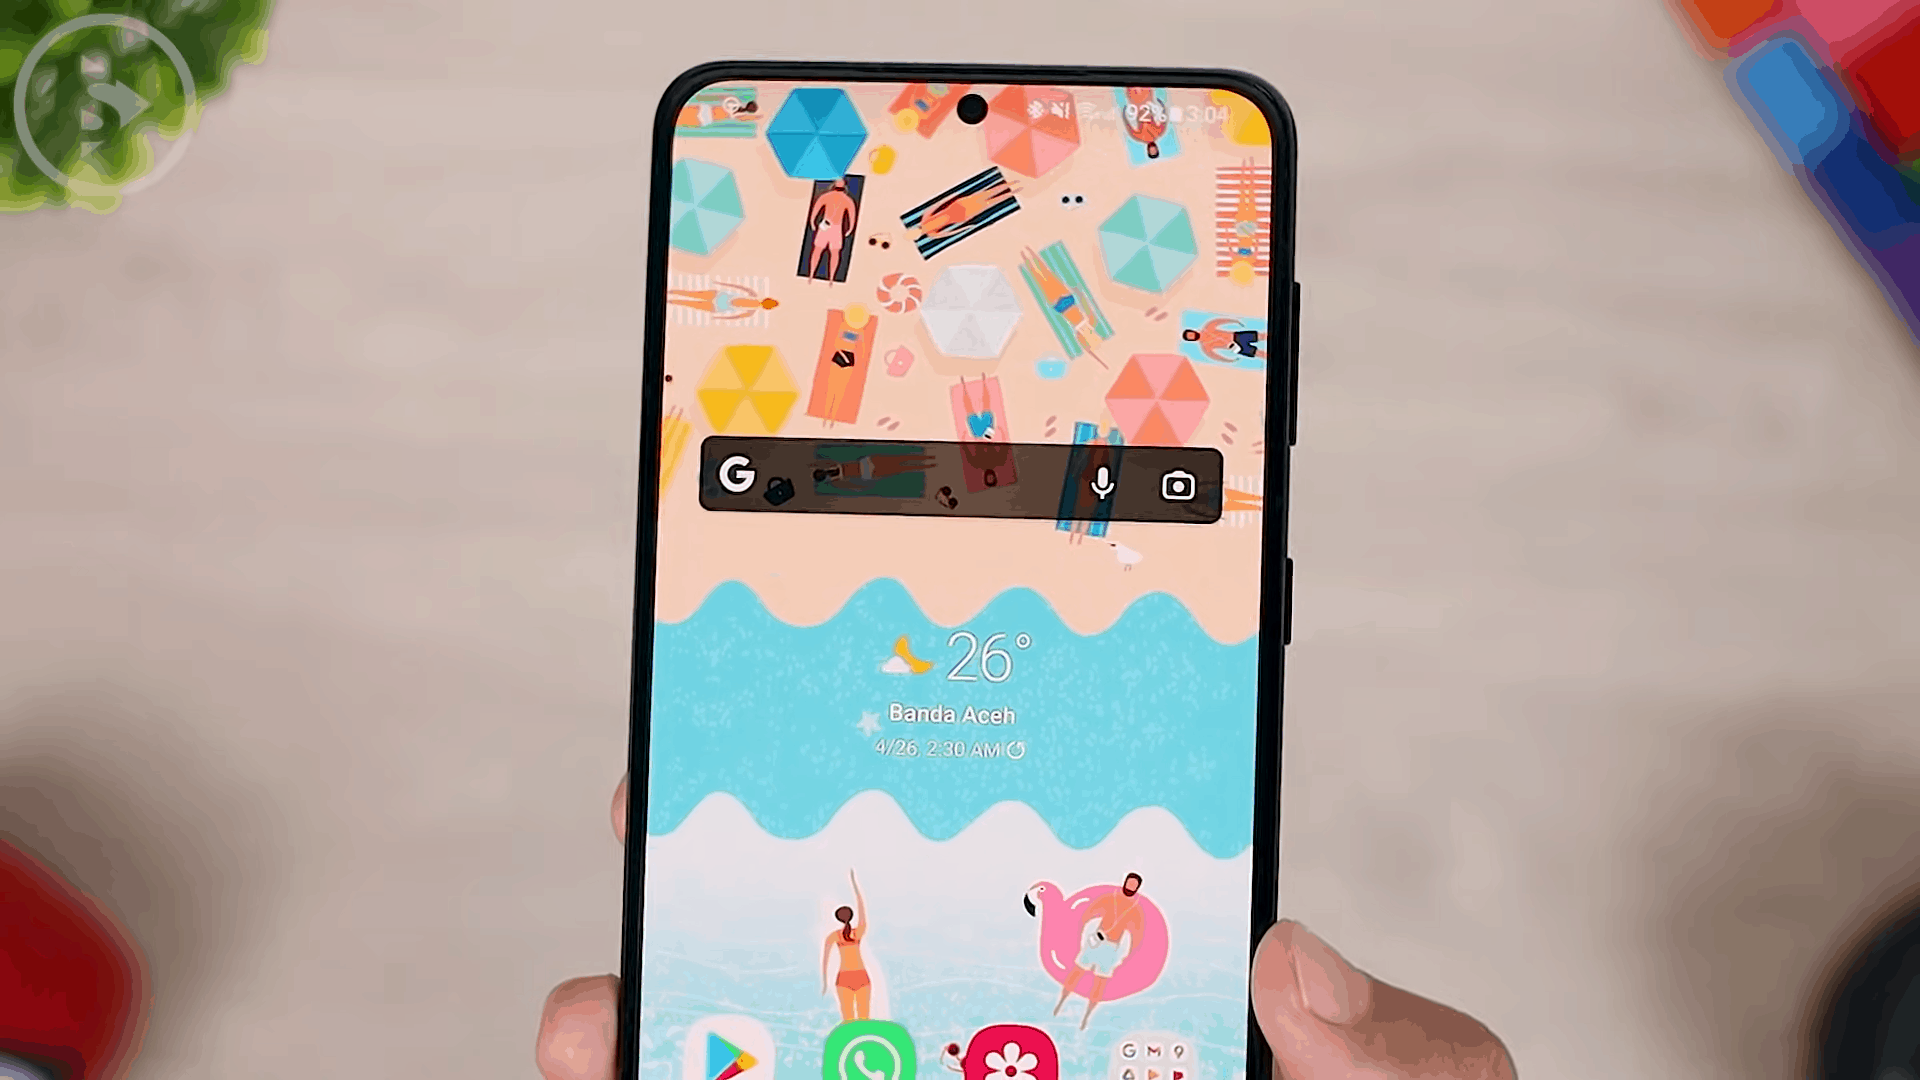 New Default Theme on Wonderland Application - 8 COOL Features in the LATEST Good Lock Update April 2021